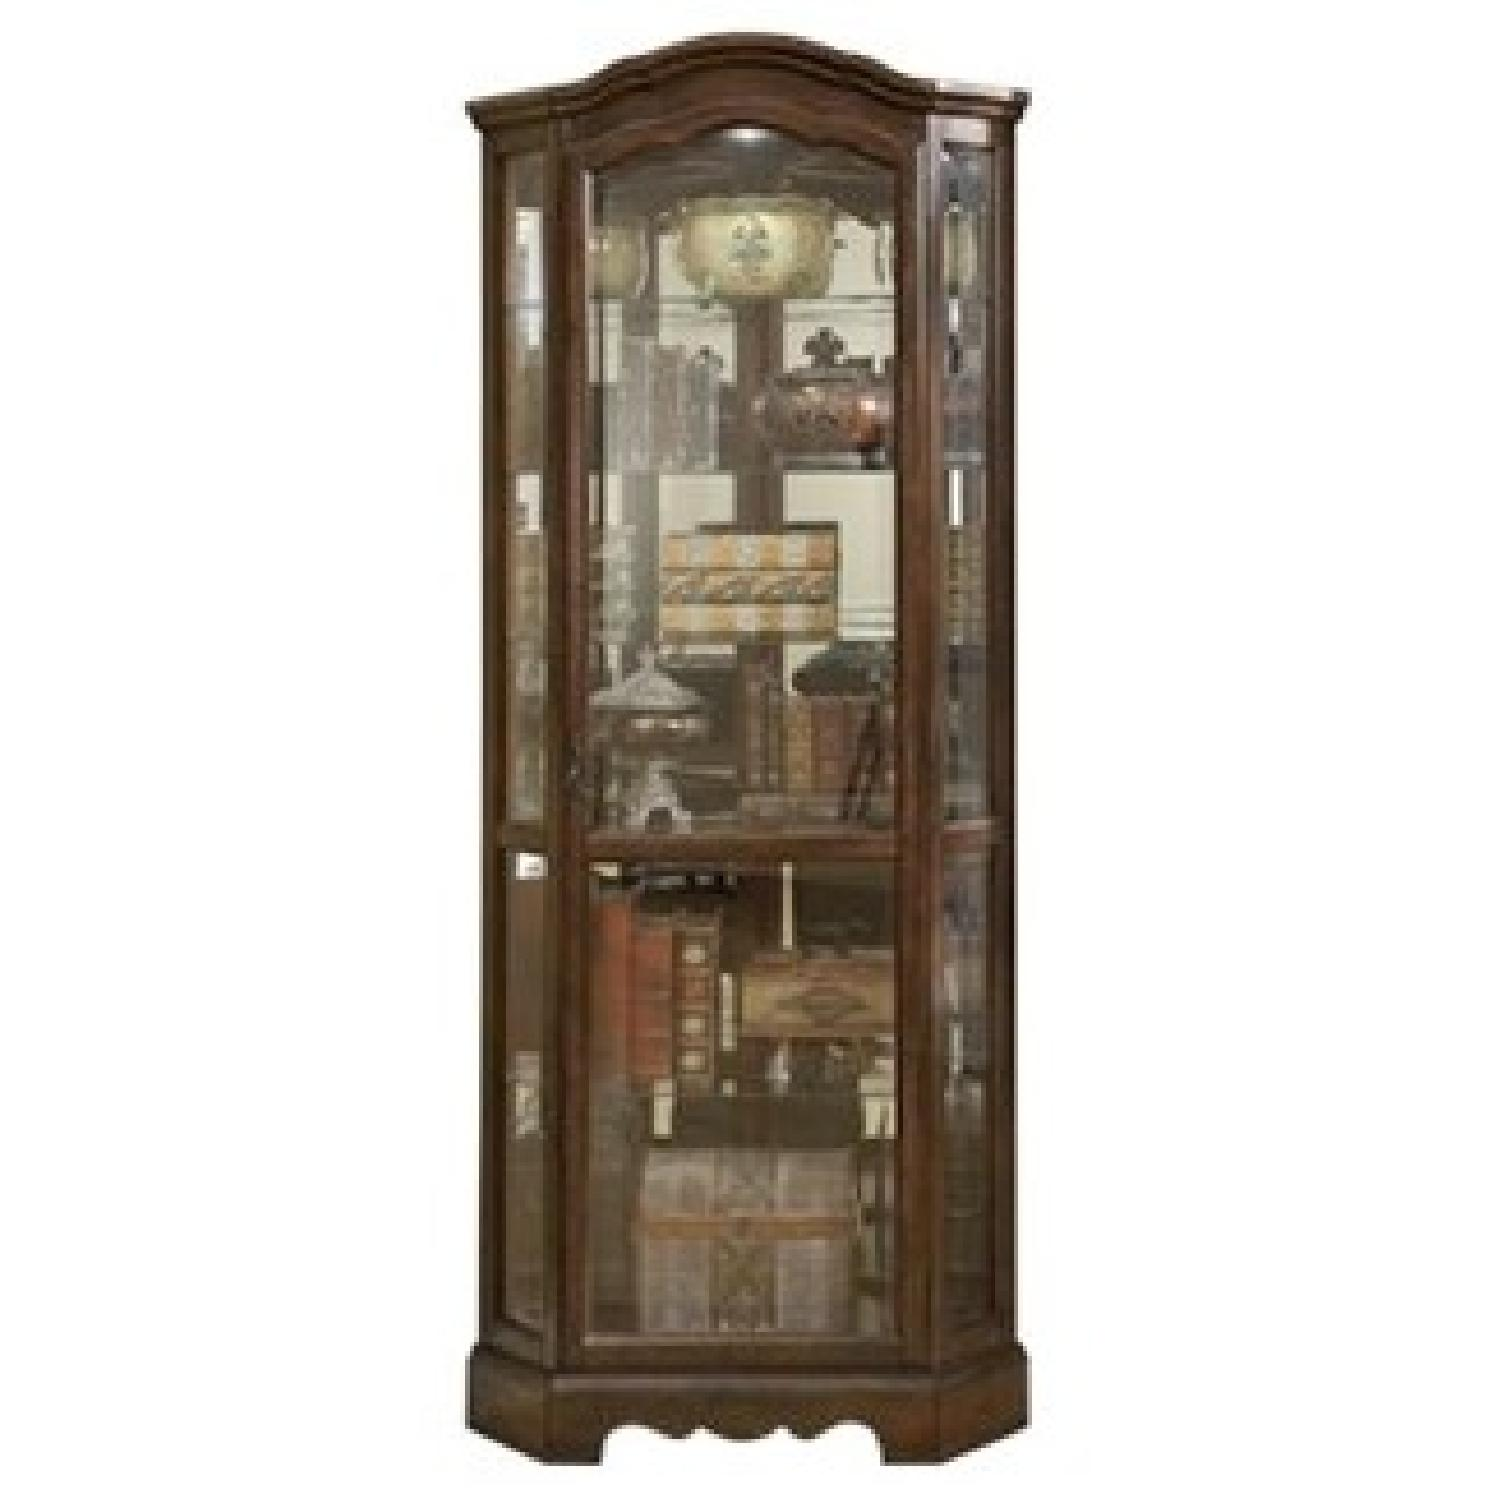 Traditional Corner Curio Cabinet in Burnished Brown Finish - image-1